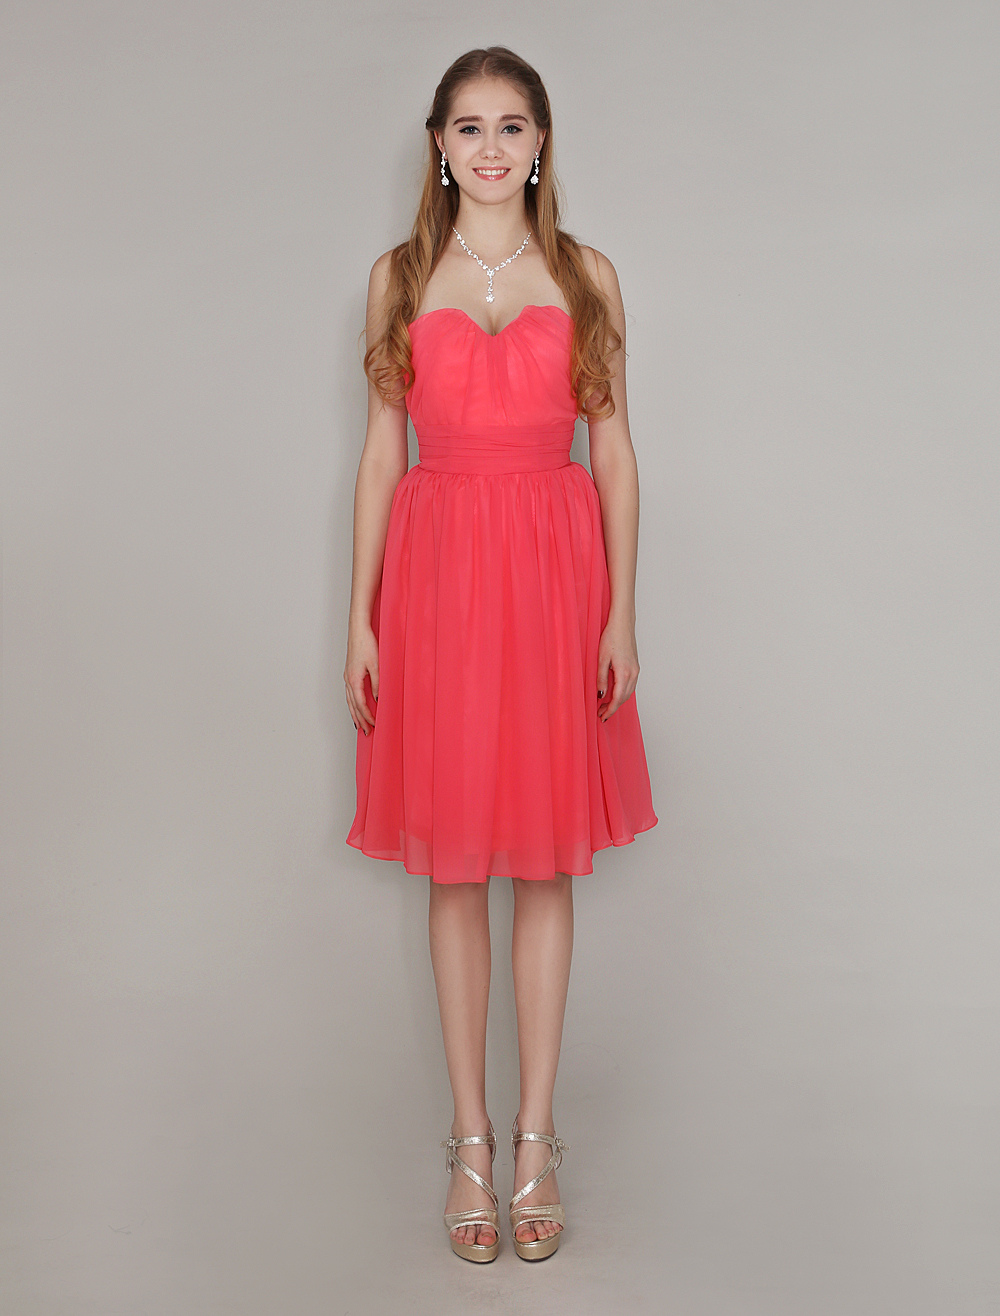 Sweetheart Neck Knee-Length Bridesmaid Dress With Pleated Chiffon Wedding Guest Dress